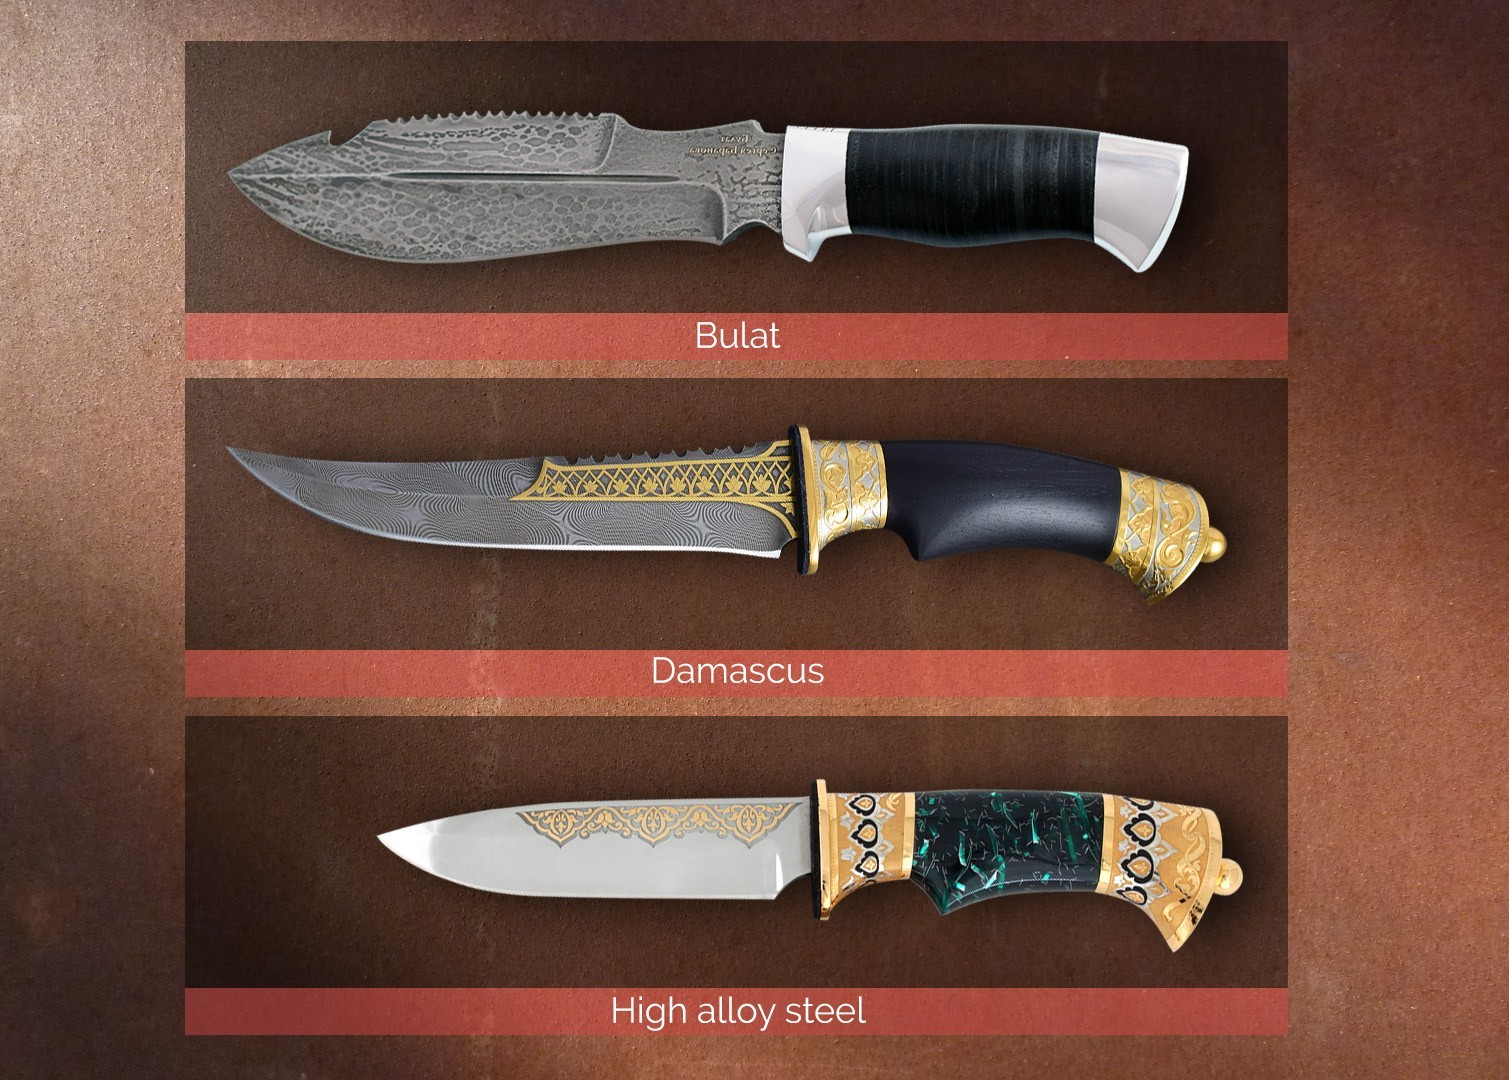 Comparison of steel for making knives